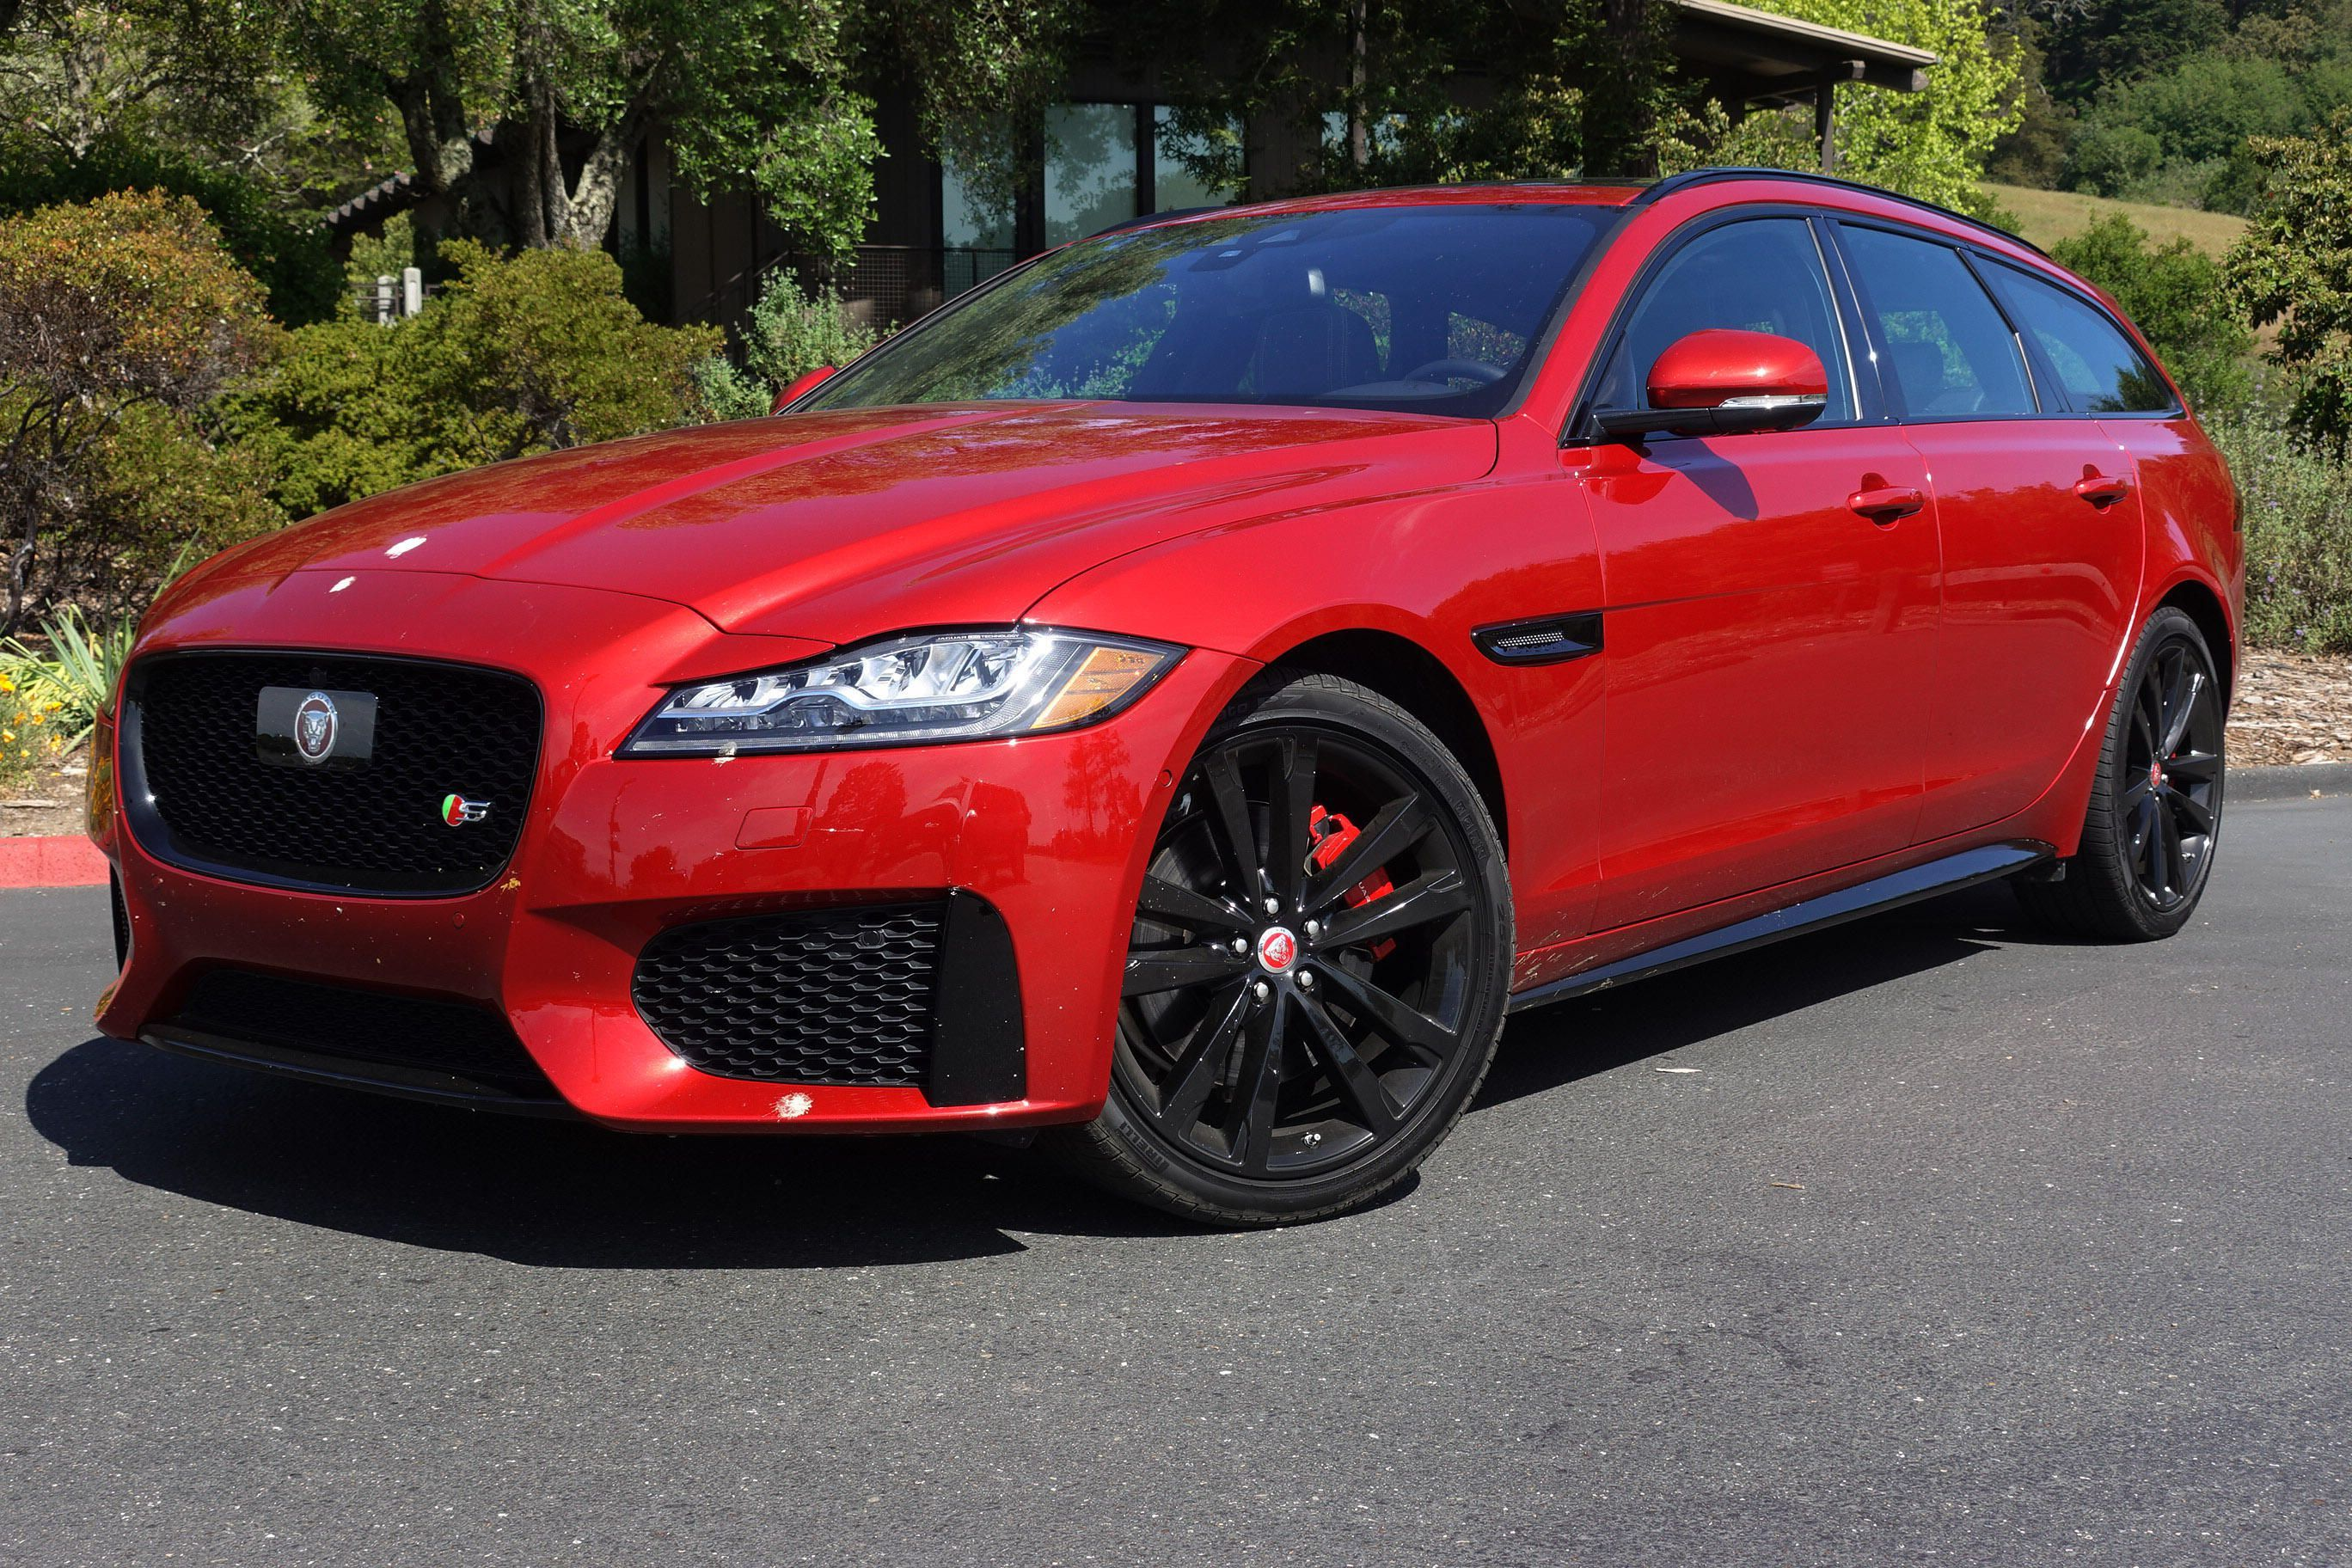 The Long Roof Jag Was A Welcome Change In An Onslaught Of Suvs But In The End That Cat Just Wouldn T Hunt America Has A Complica Station Wagon Jaguar Xf Wagon